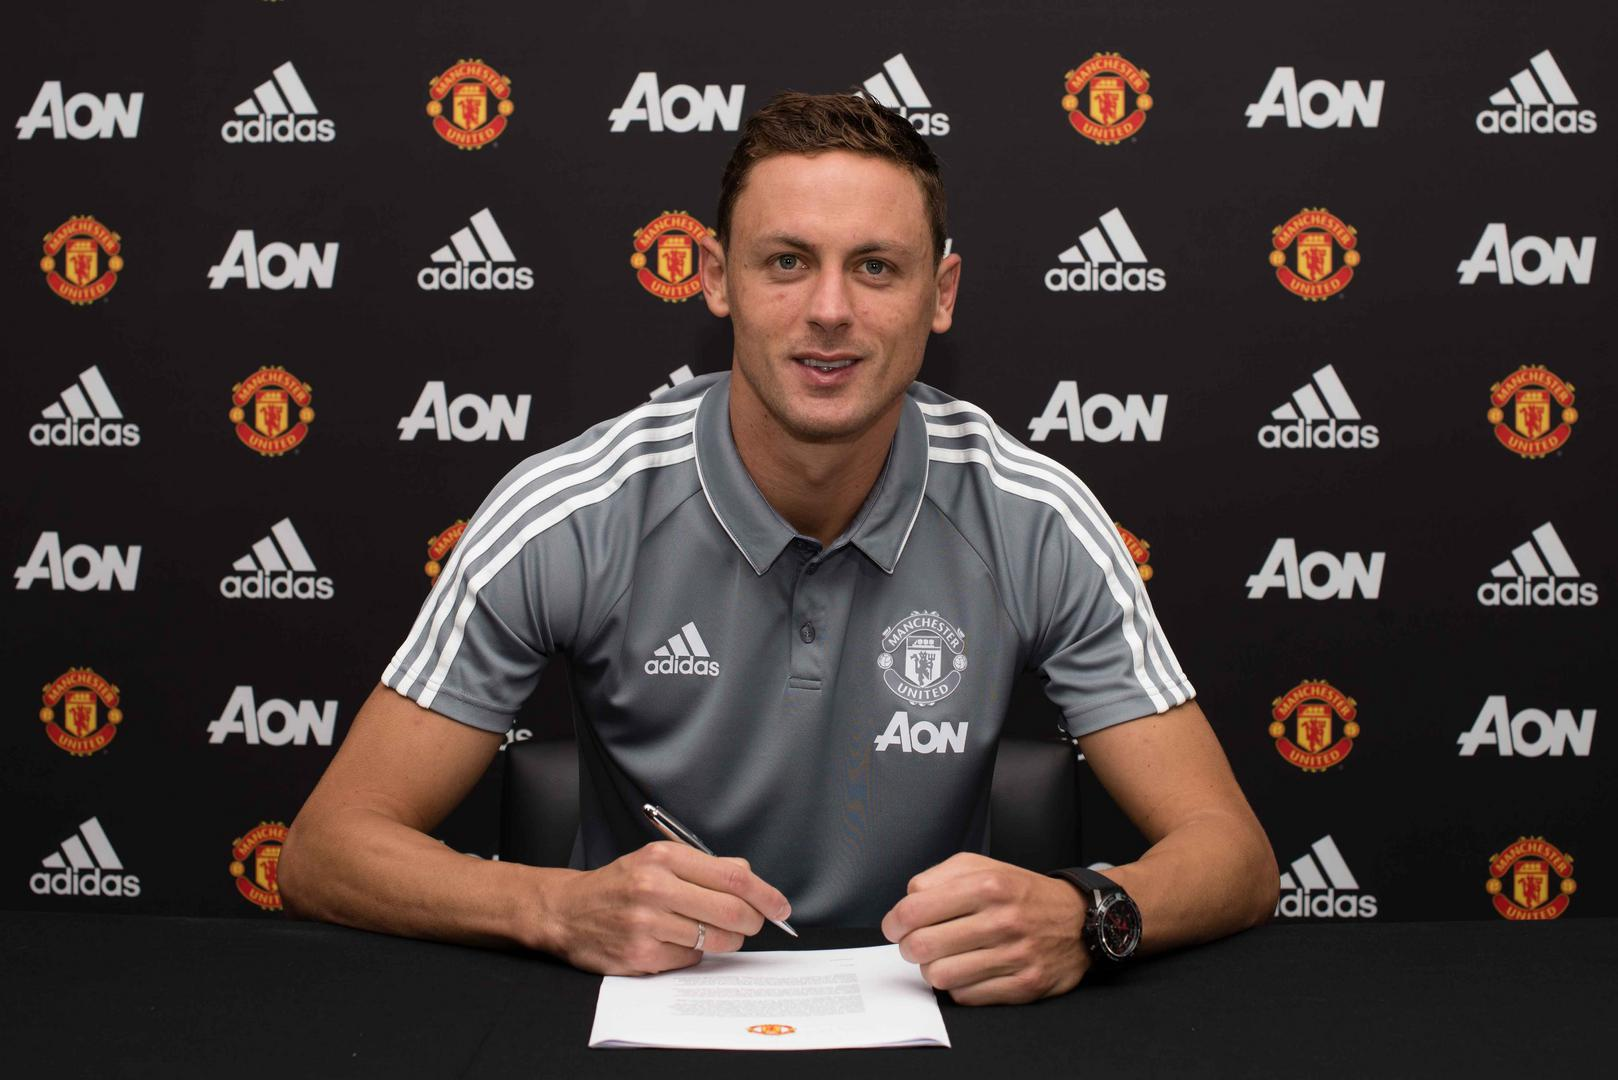 Nemanja Matic signs for Manchester United in July 2017.